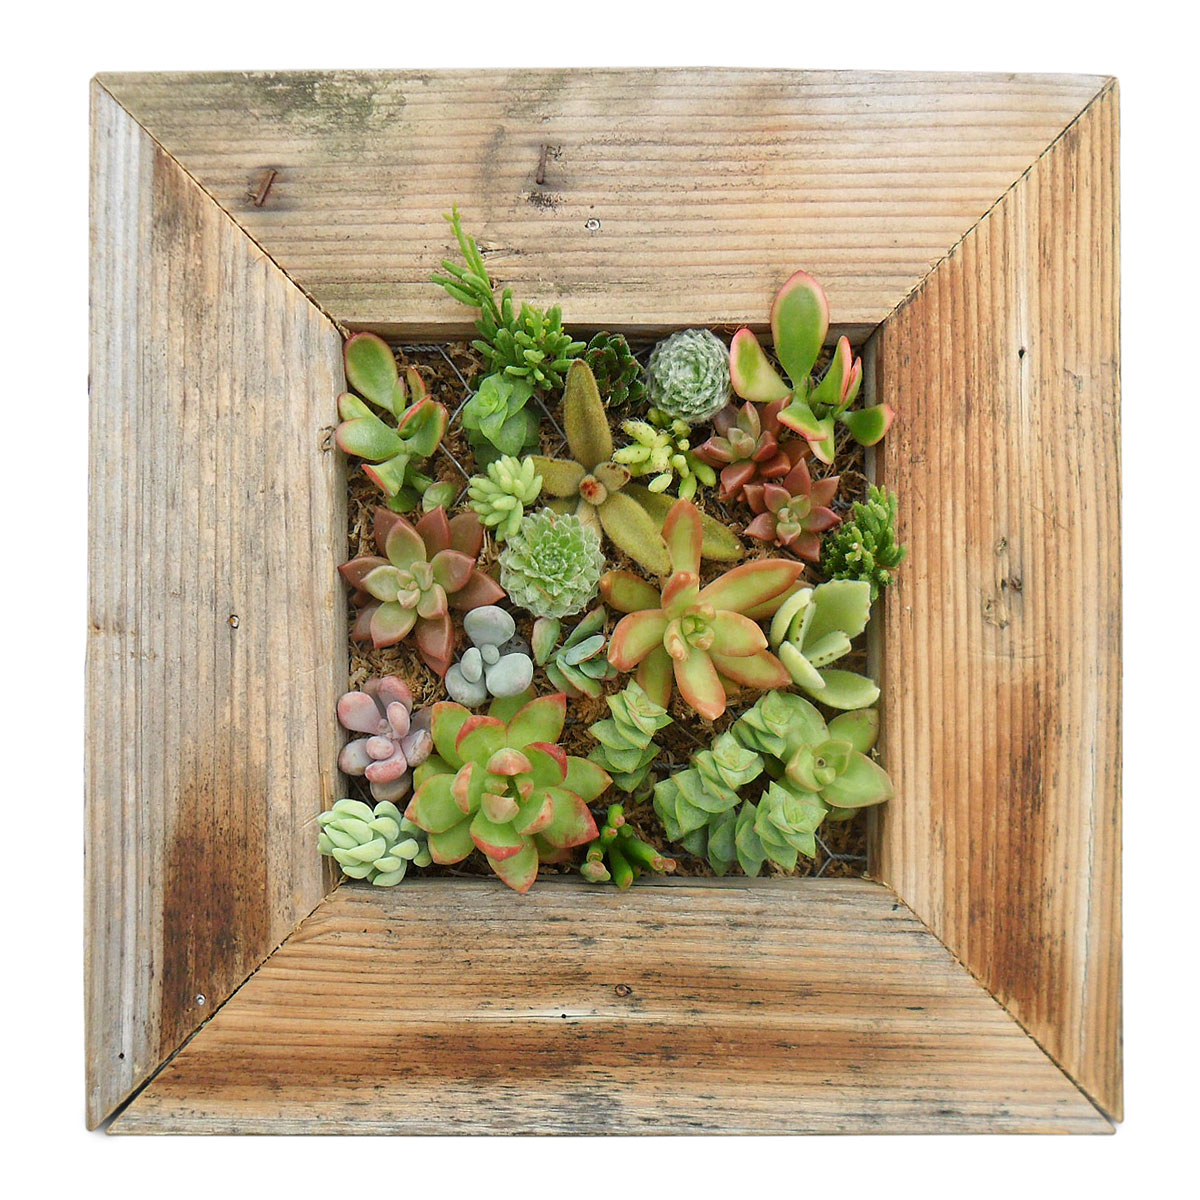 Picking the perfect gift with uncommongoods for Living wall planter